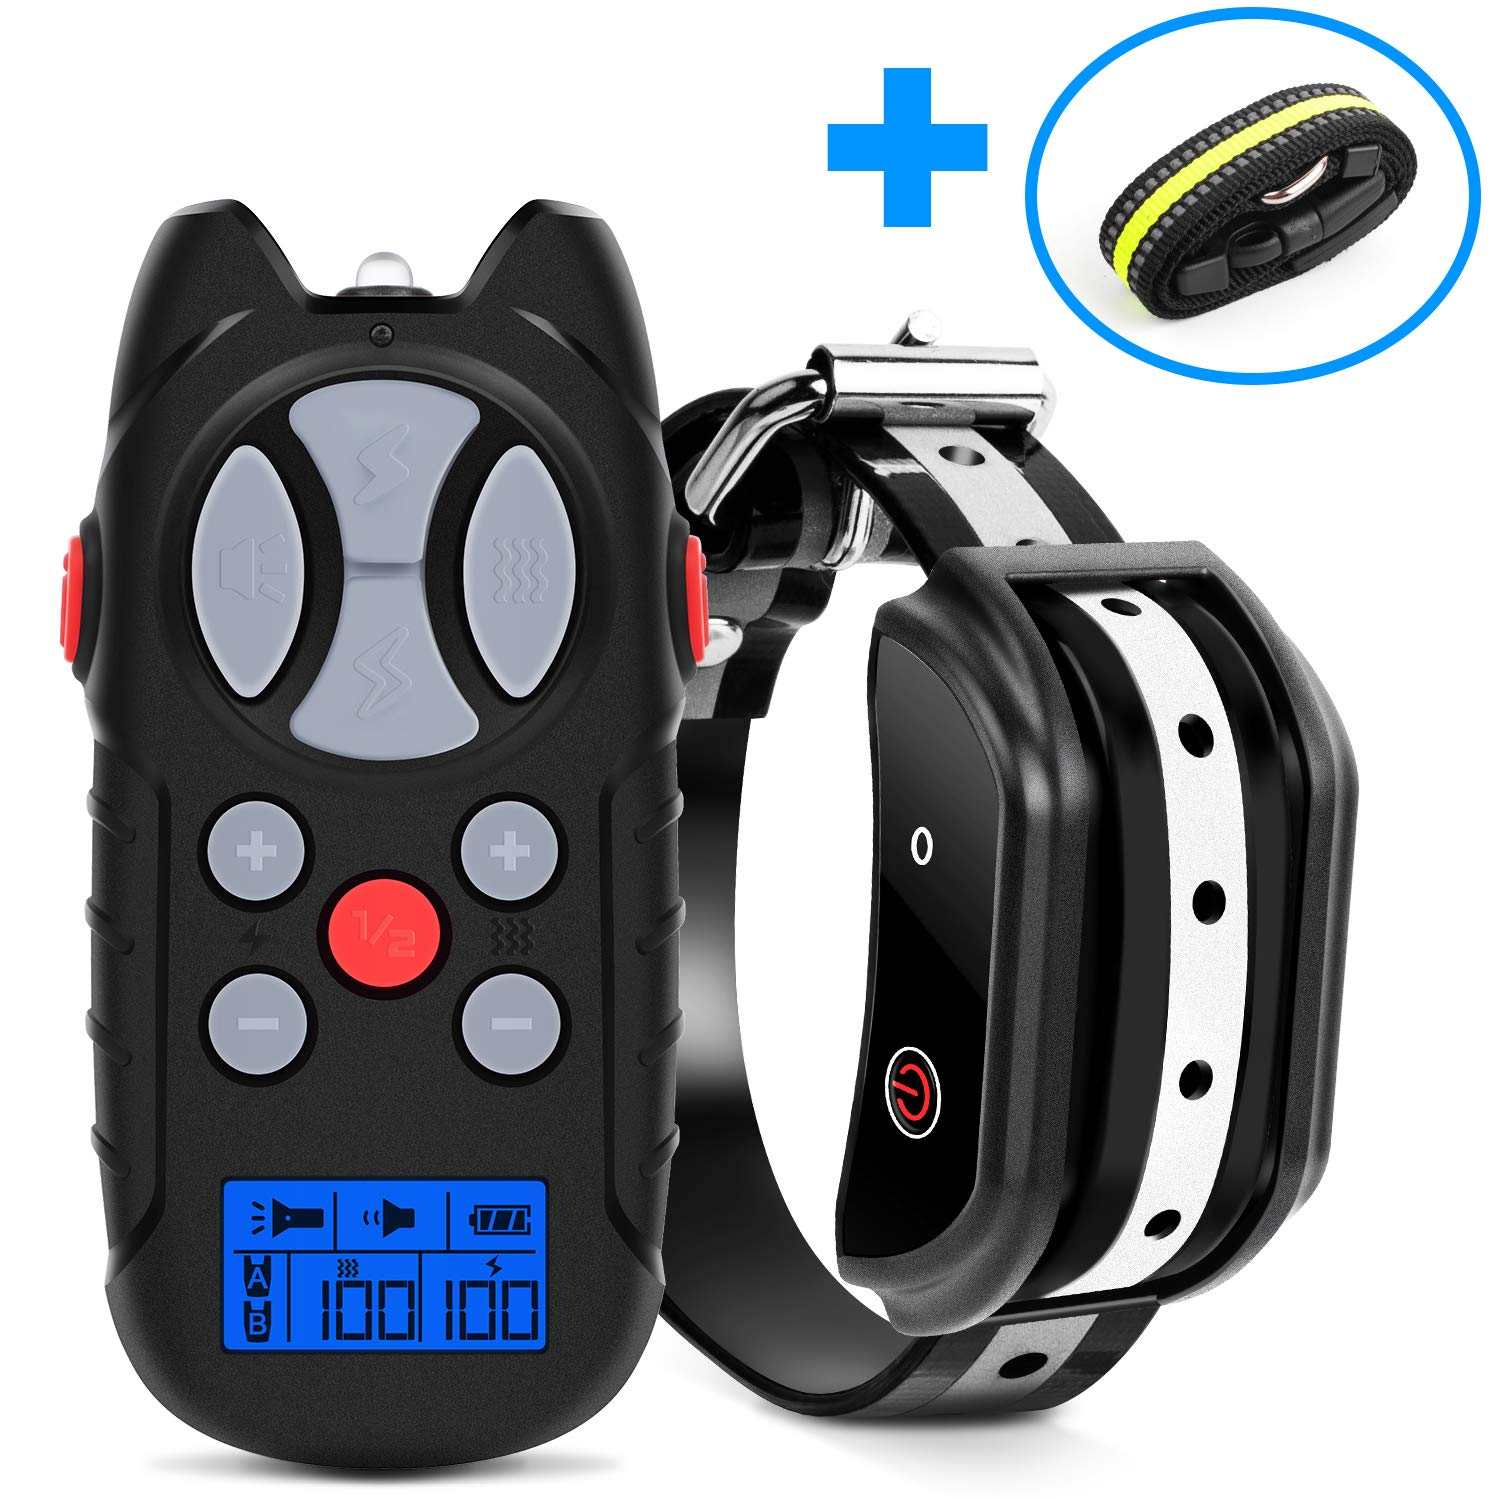 Shock Collar for Dogs, 2019 Newest Flittor Dog training Collar, Rechargeable Dog Shock Collar with Remote, 3 Modes Beep Vibration and Shock 100% Waterproof Bark Collar for Small, Medium, Large Dogs by Flittor